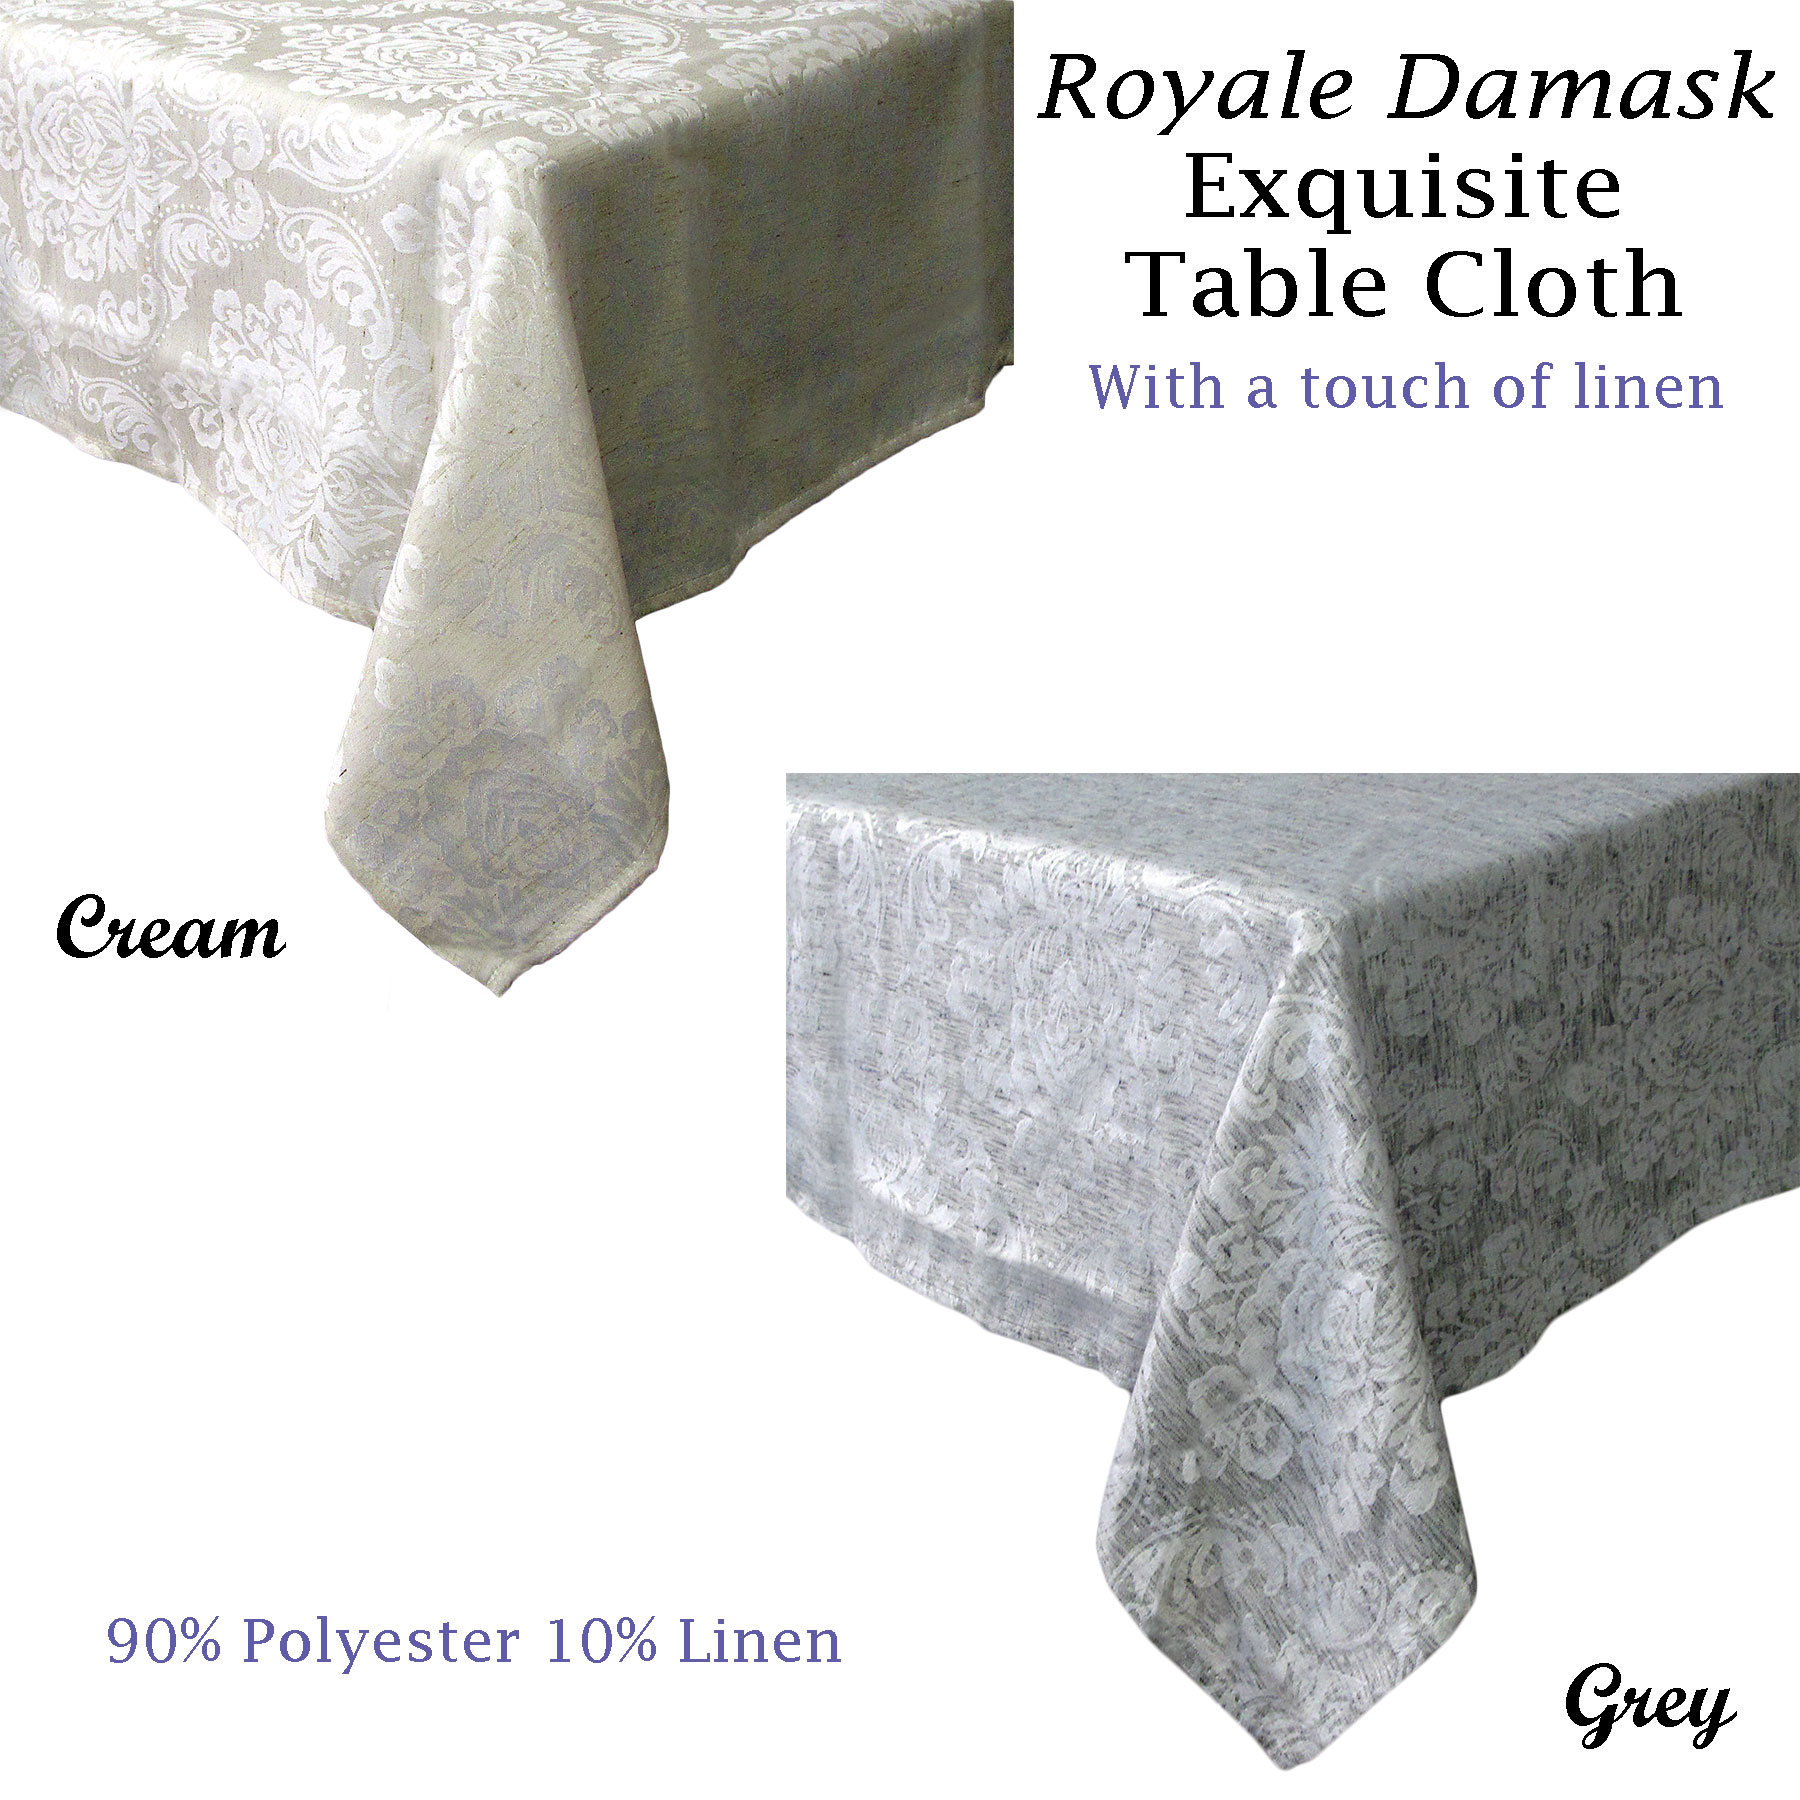 Poly Cotton Tablecloth 10-12 Seater 10 8-10 ROUND SQUARE RECTANGLE 6-8